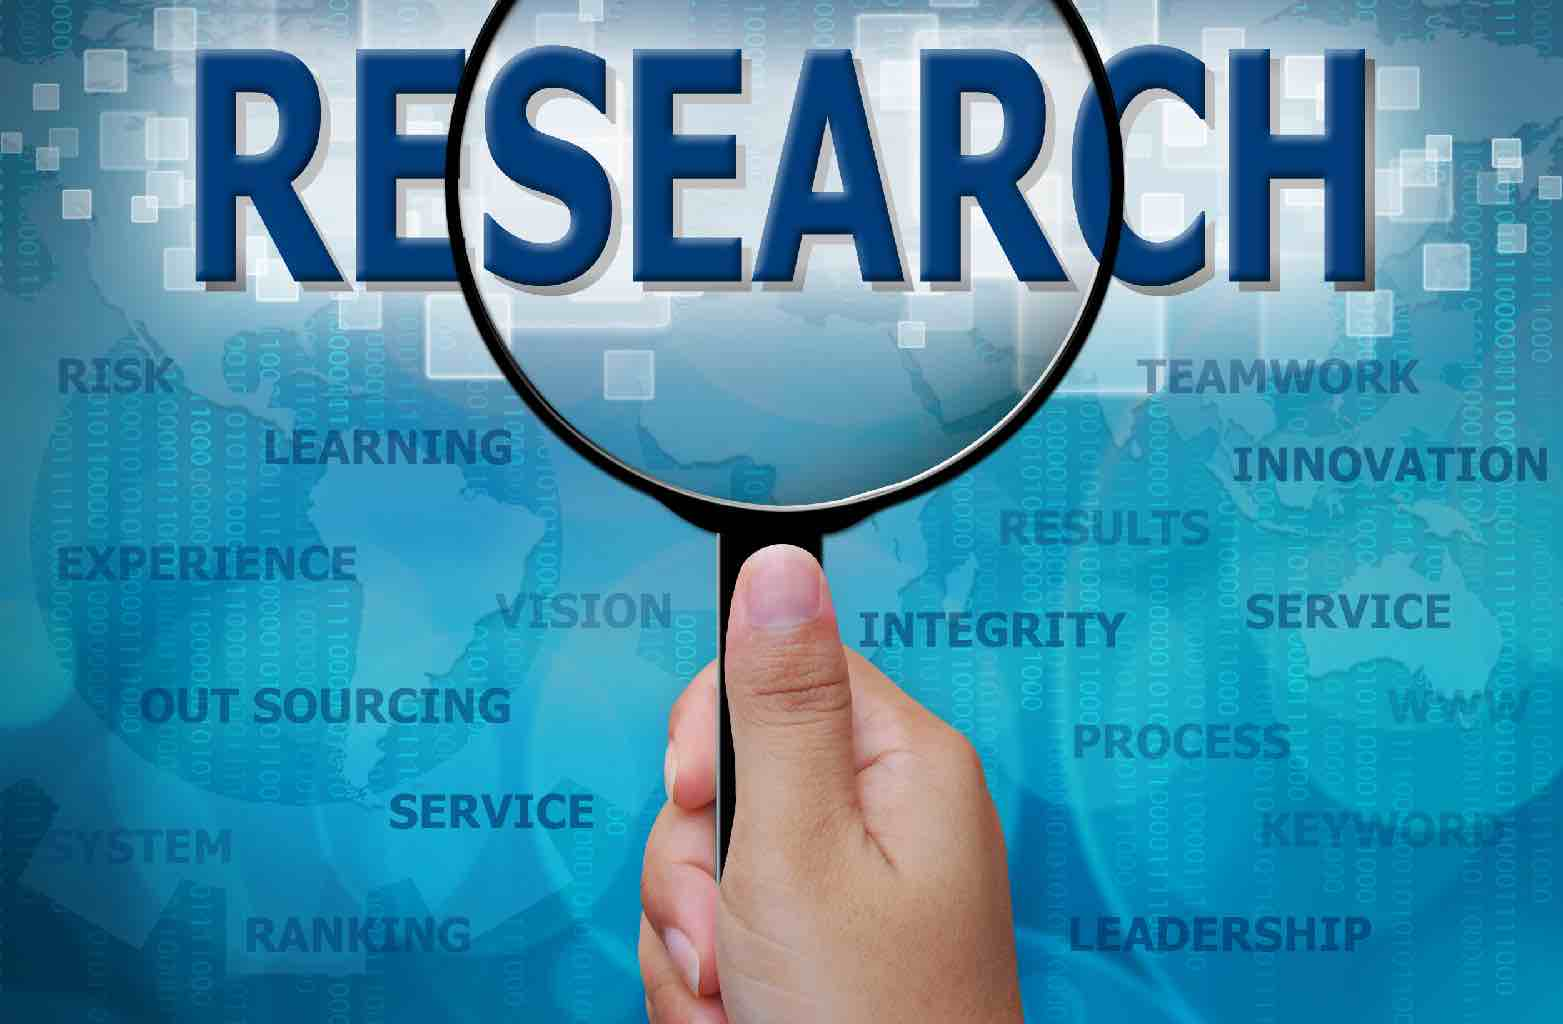 """A hand holding a magnifying glass focussed on the word """"RESEARCH"""" with various related words below it."""